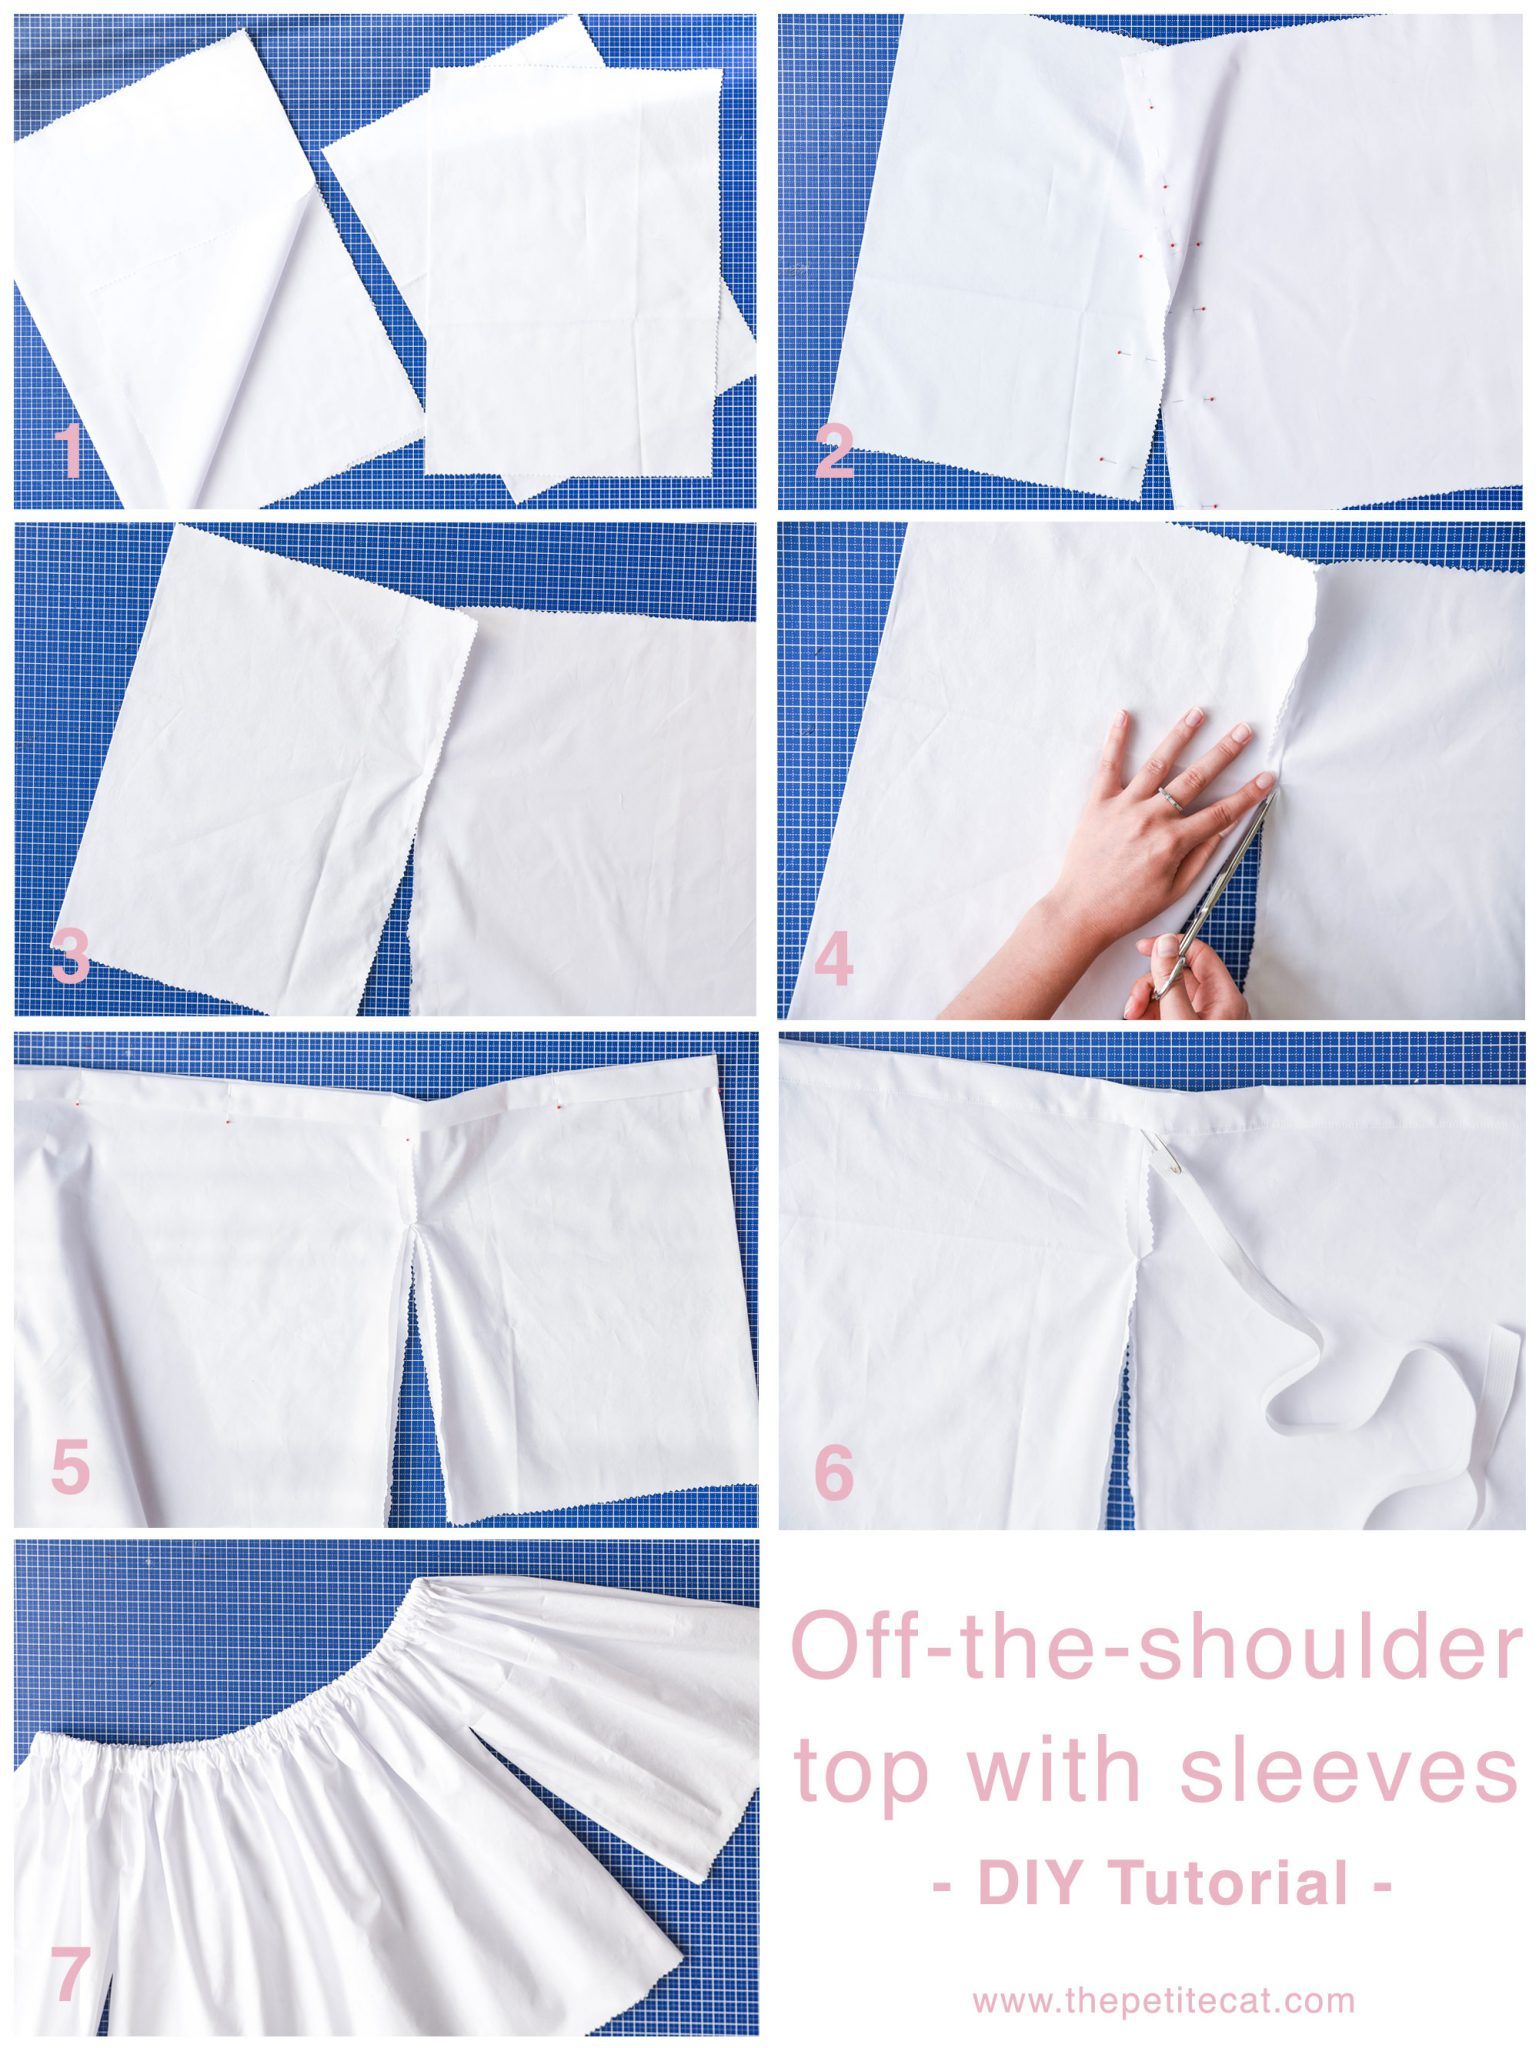 diy-tutorial-off-the-shoulder-top-and-dress-thepetitecat-project1